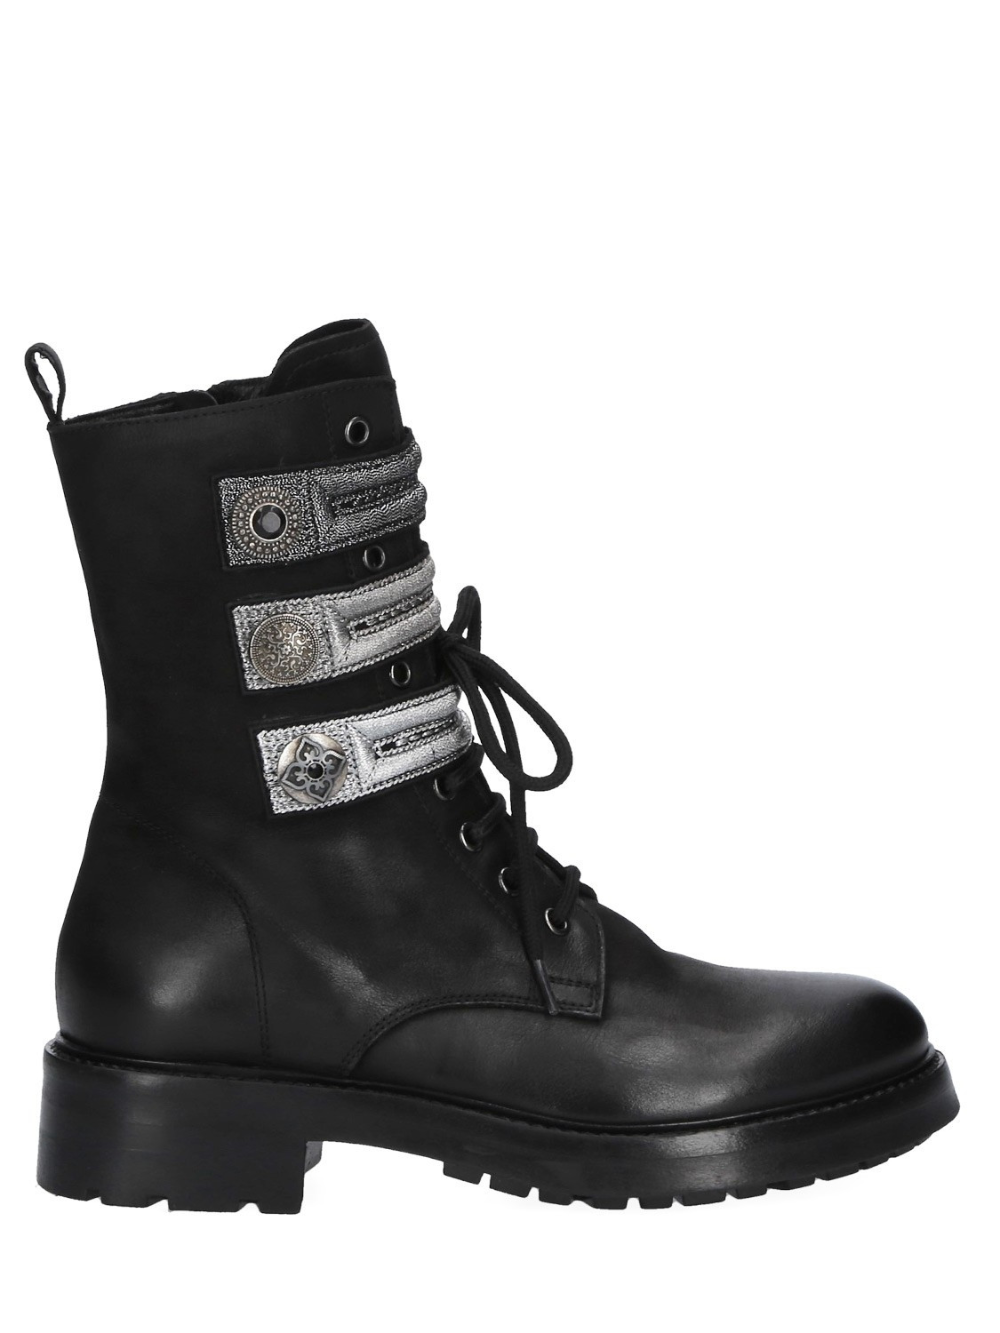 Leather Laced Ankle Boots | Skor